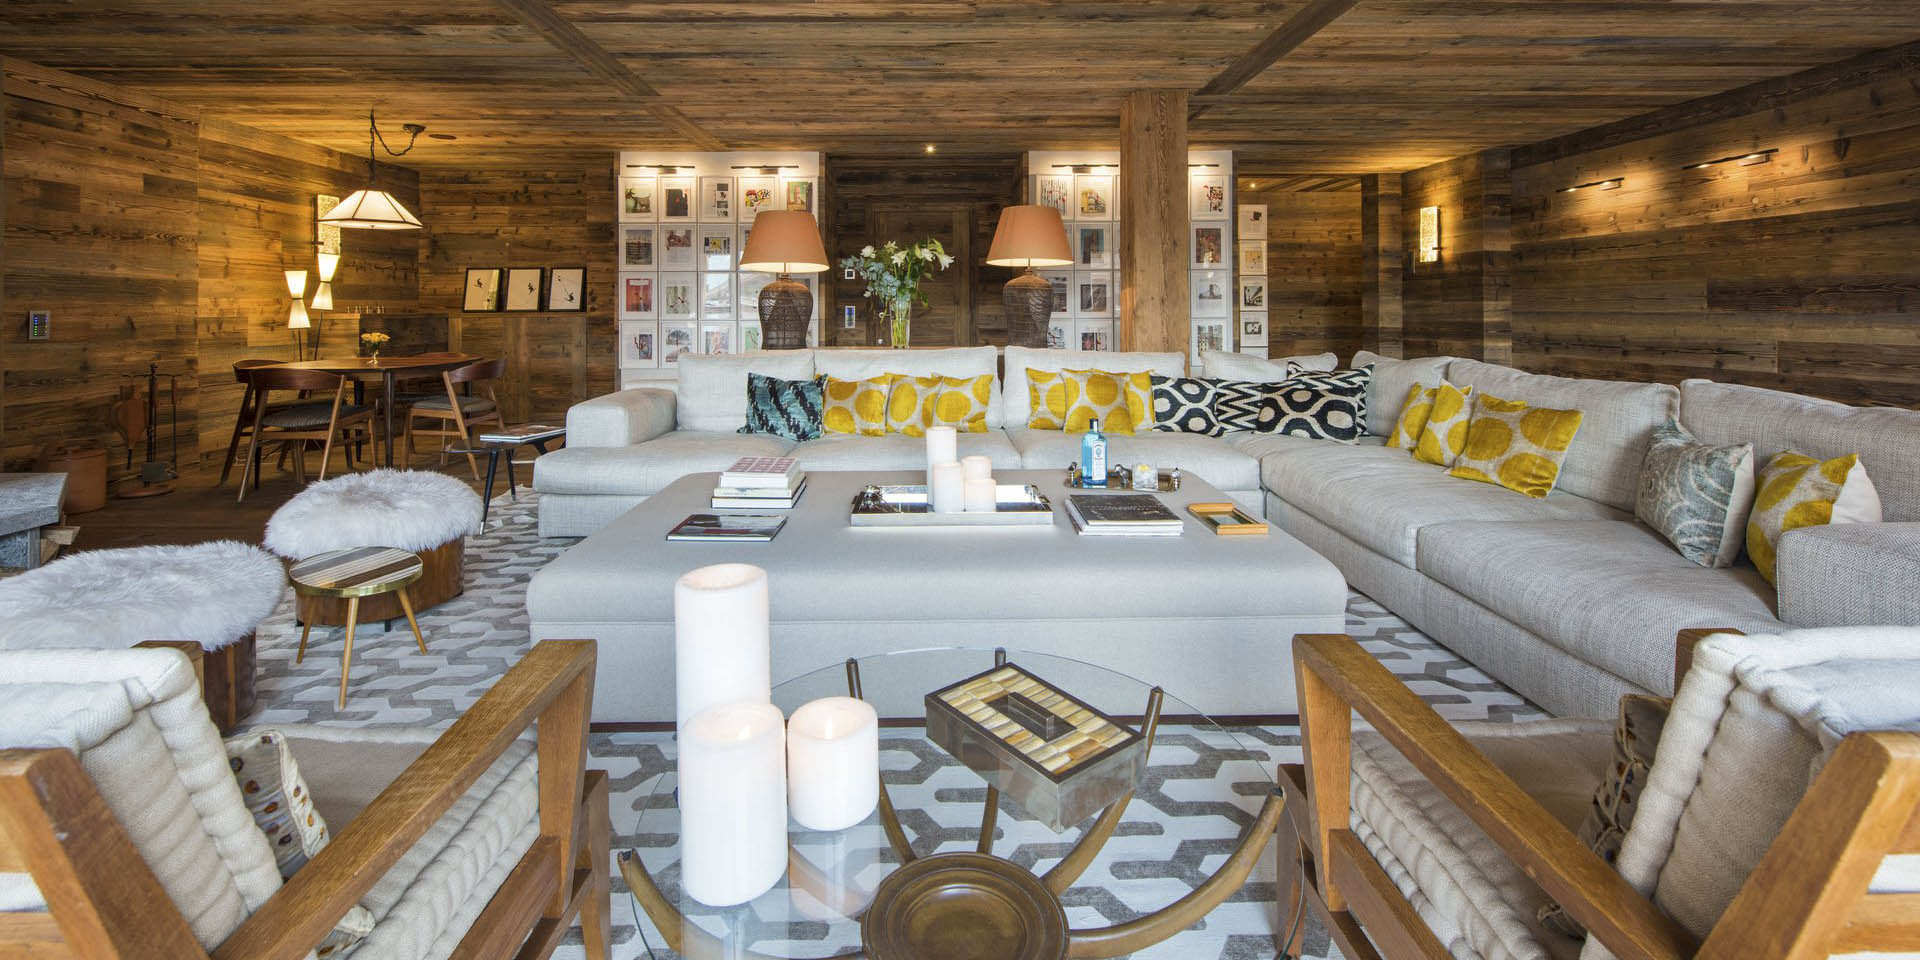 Appartement Place Blanche 1 Verbier Les 4 Vallees Zwitserland